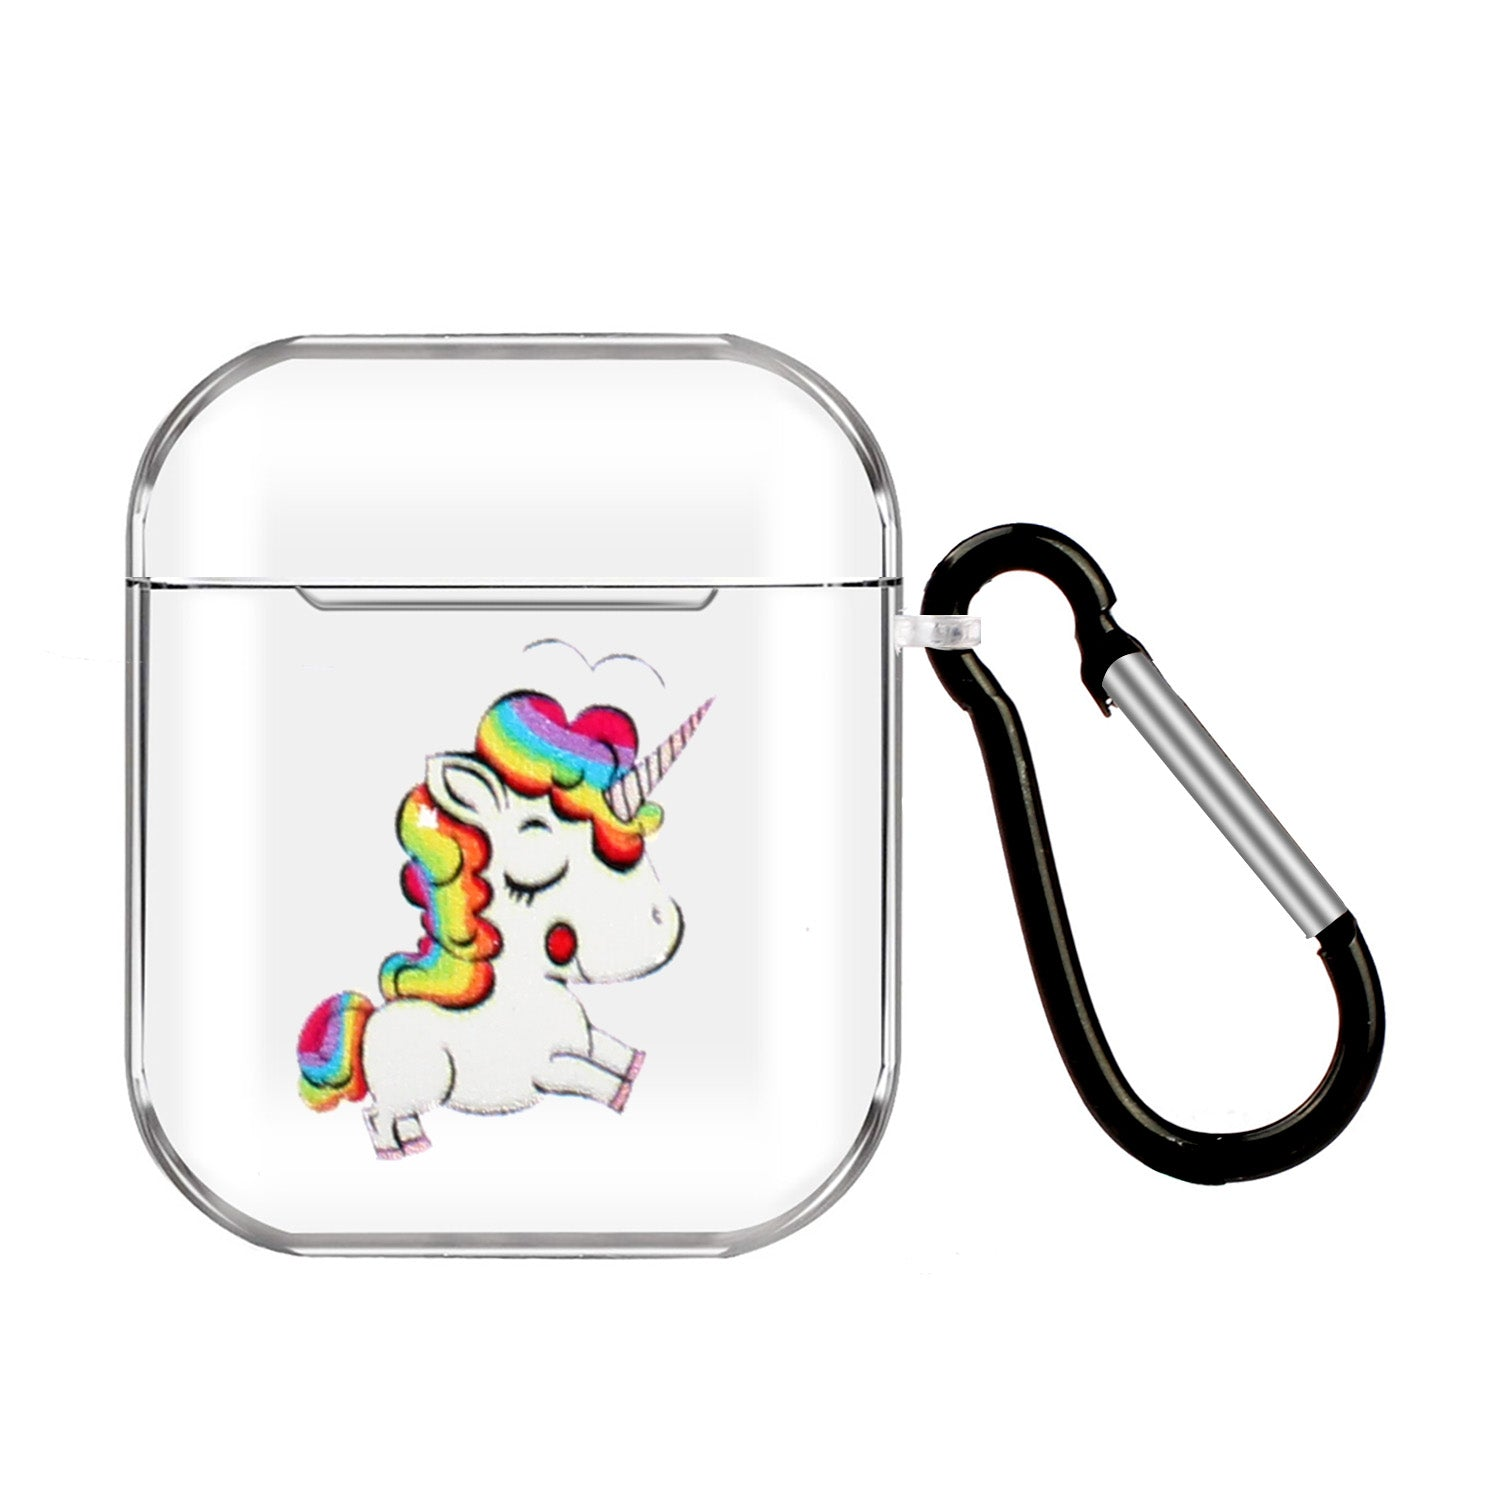 For AirPods 1/2 Headphones Case Transparent Earphone Shell with Metal Hook Overall Protection Cover 18 unicorns